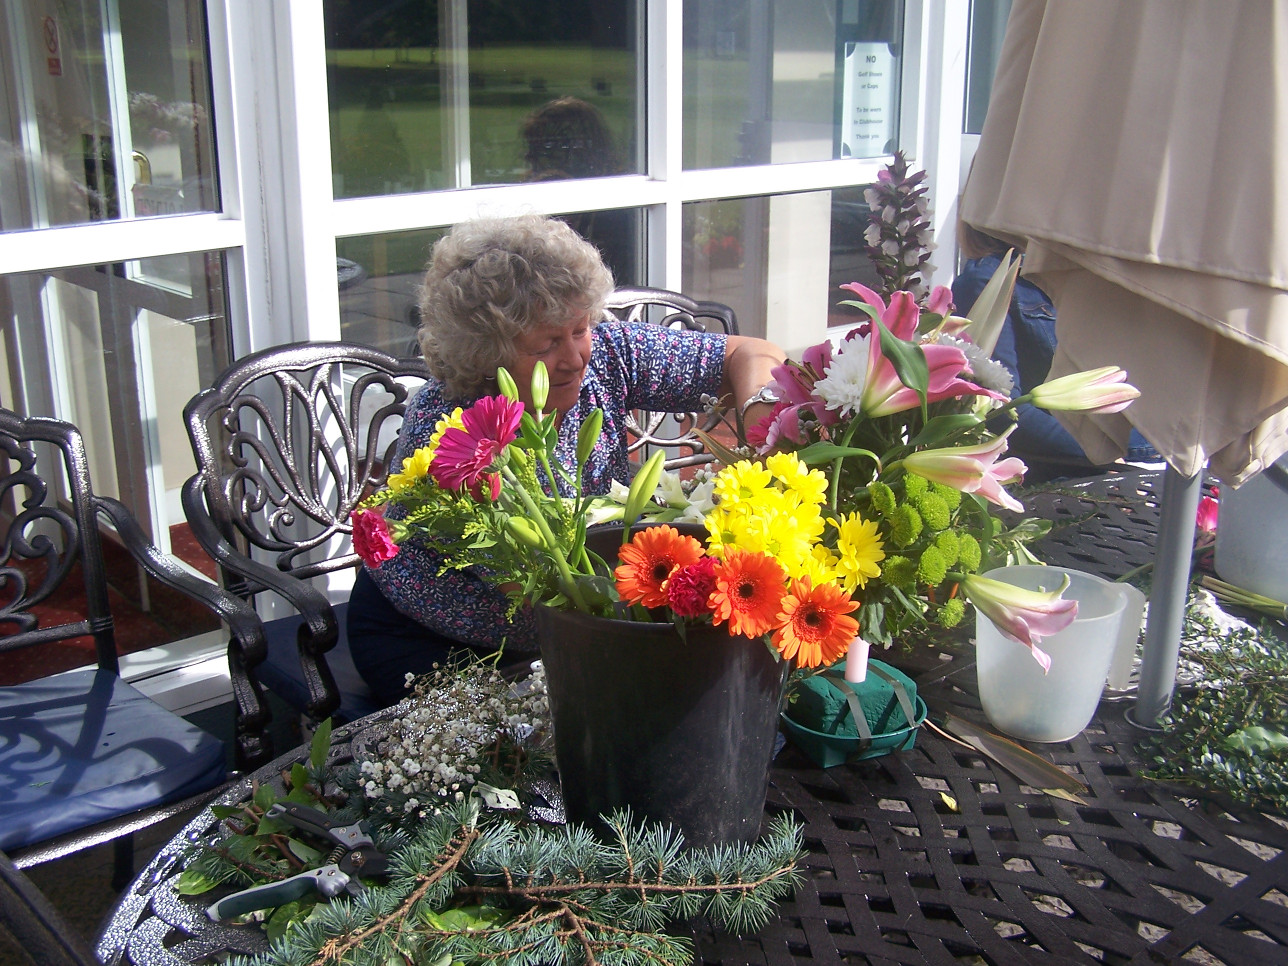 Olive Payne - The lady responsible for most of the beautiful flower arrangements busy at work